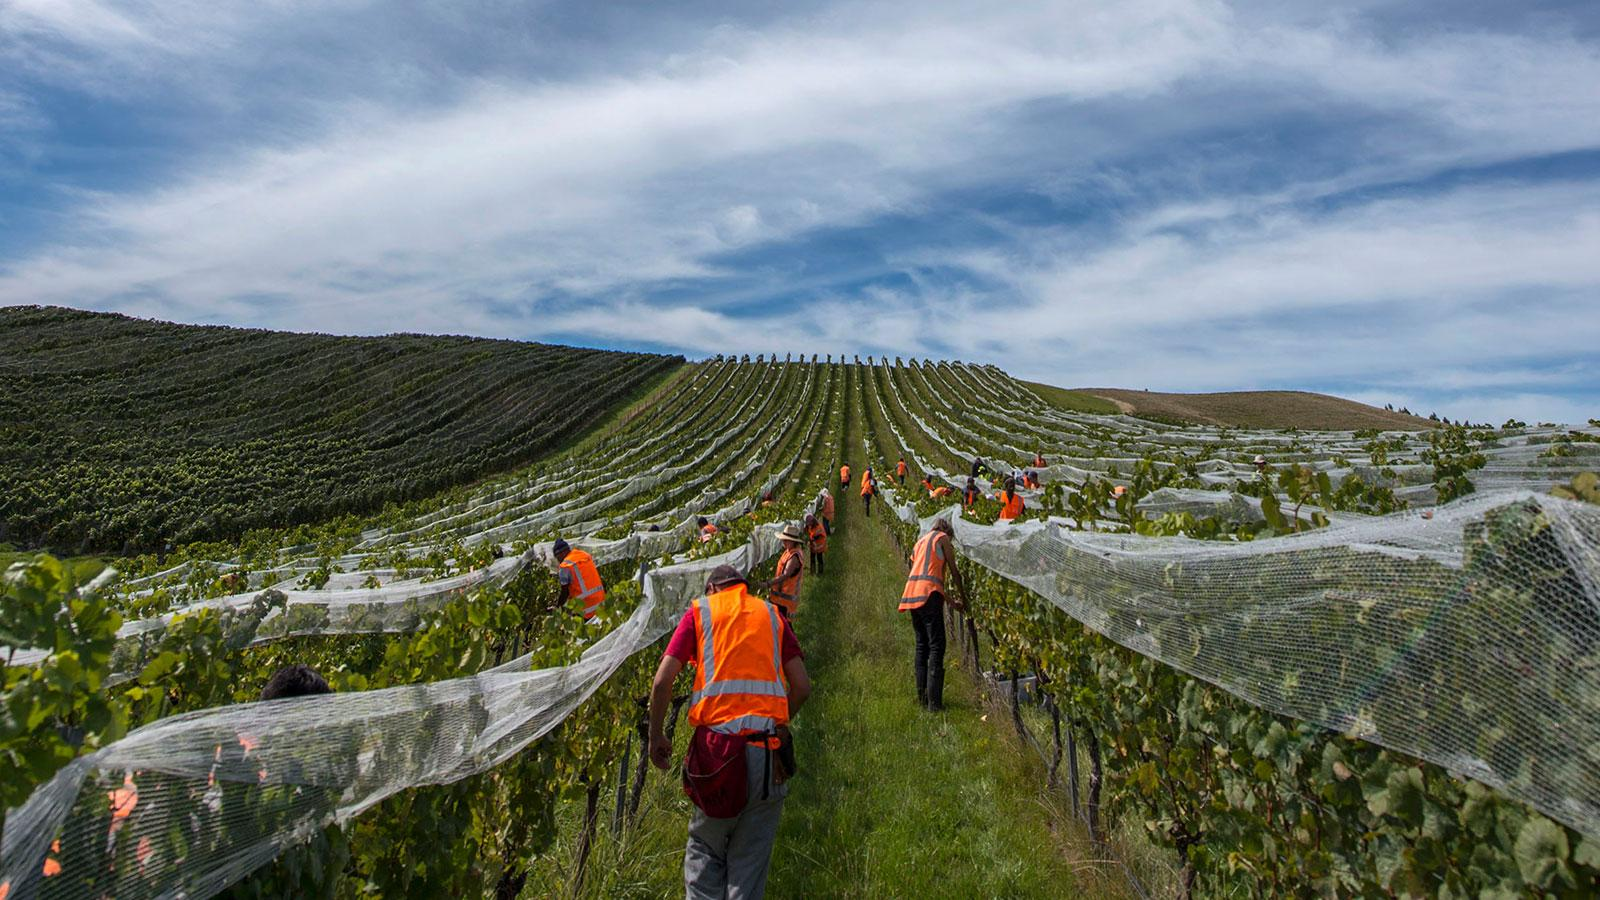 New Zealand Winemakers Call 2018 a Challenging Year that Delivered Promising Wines